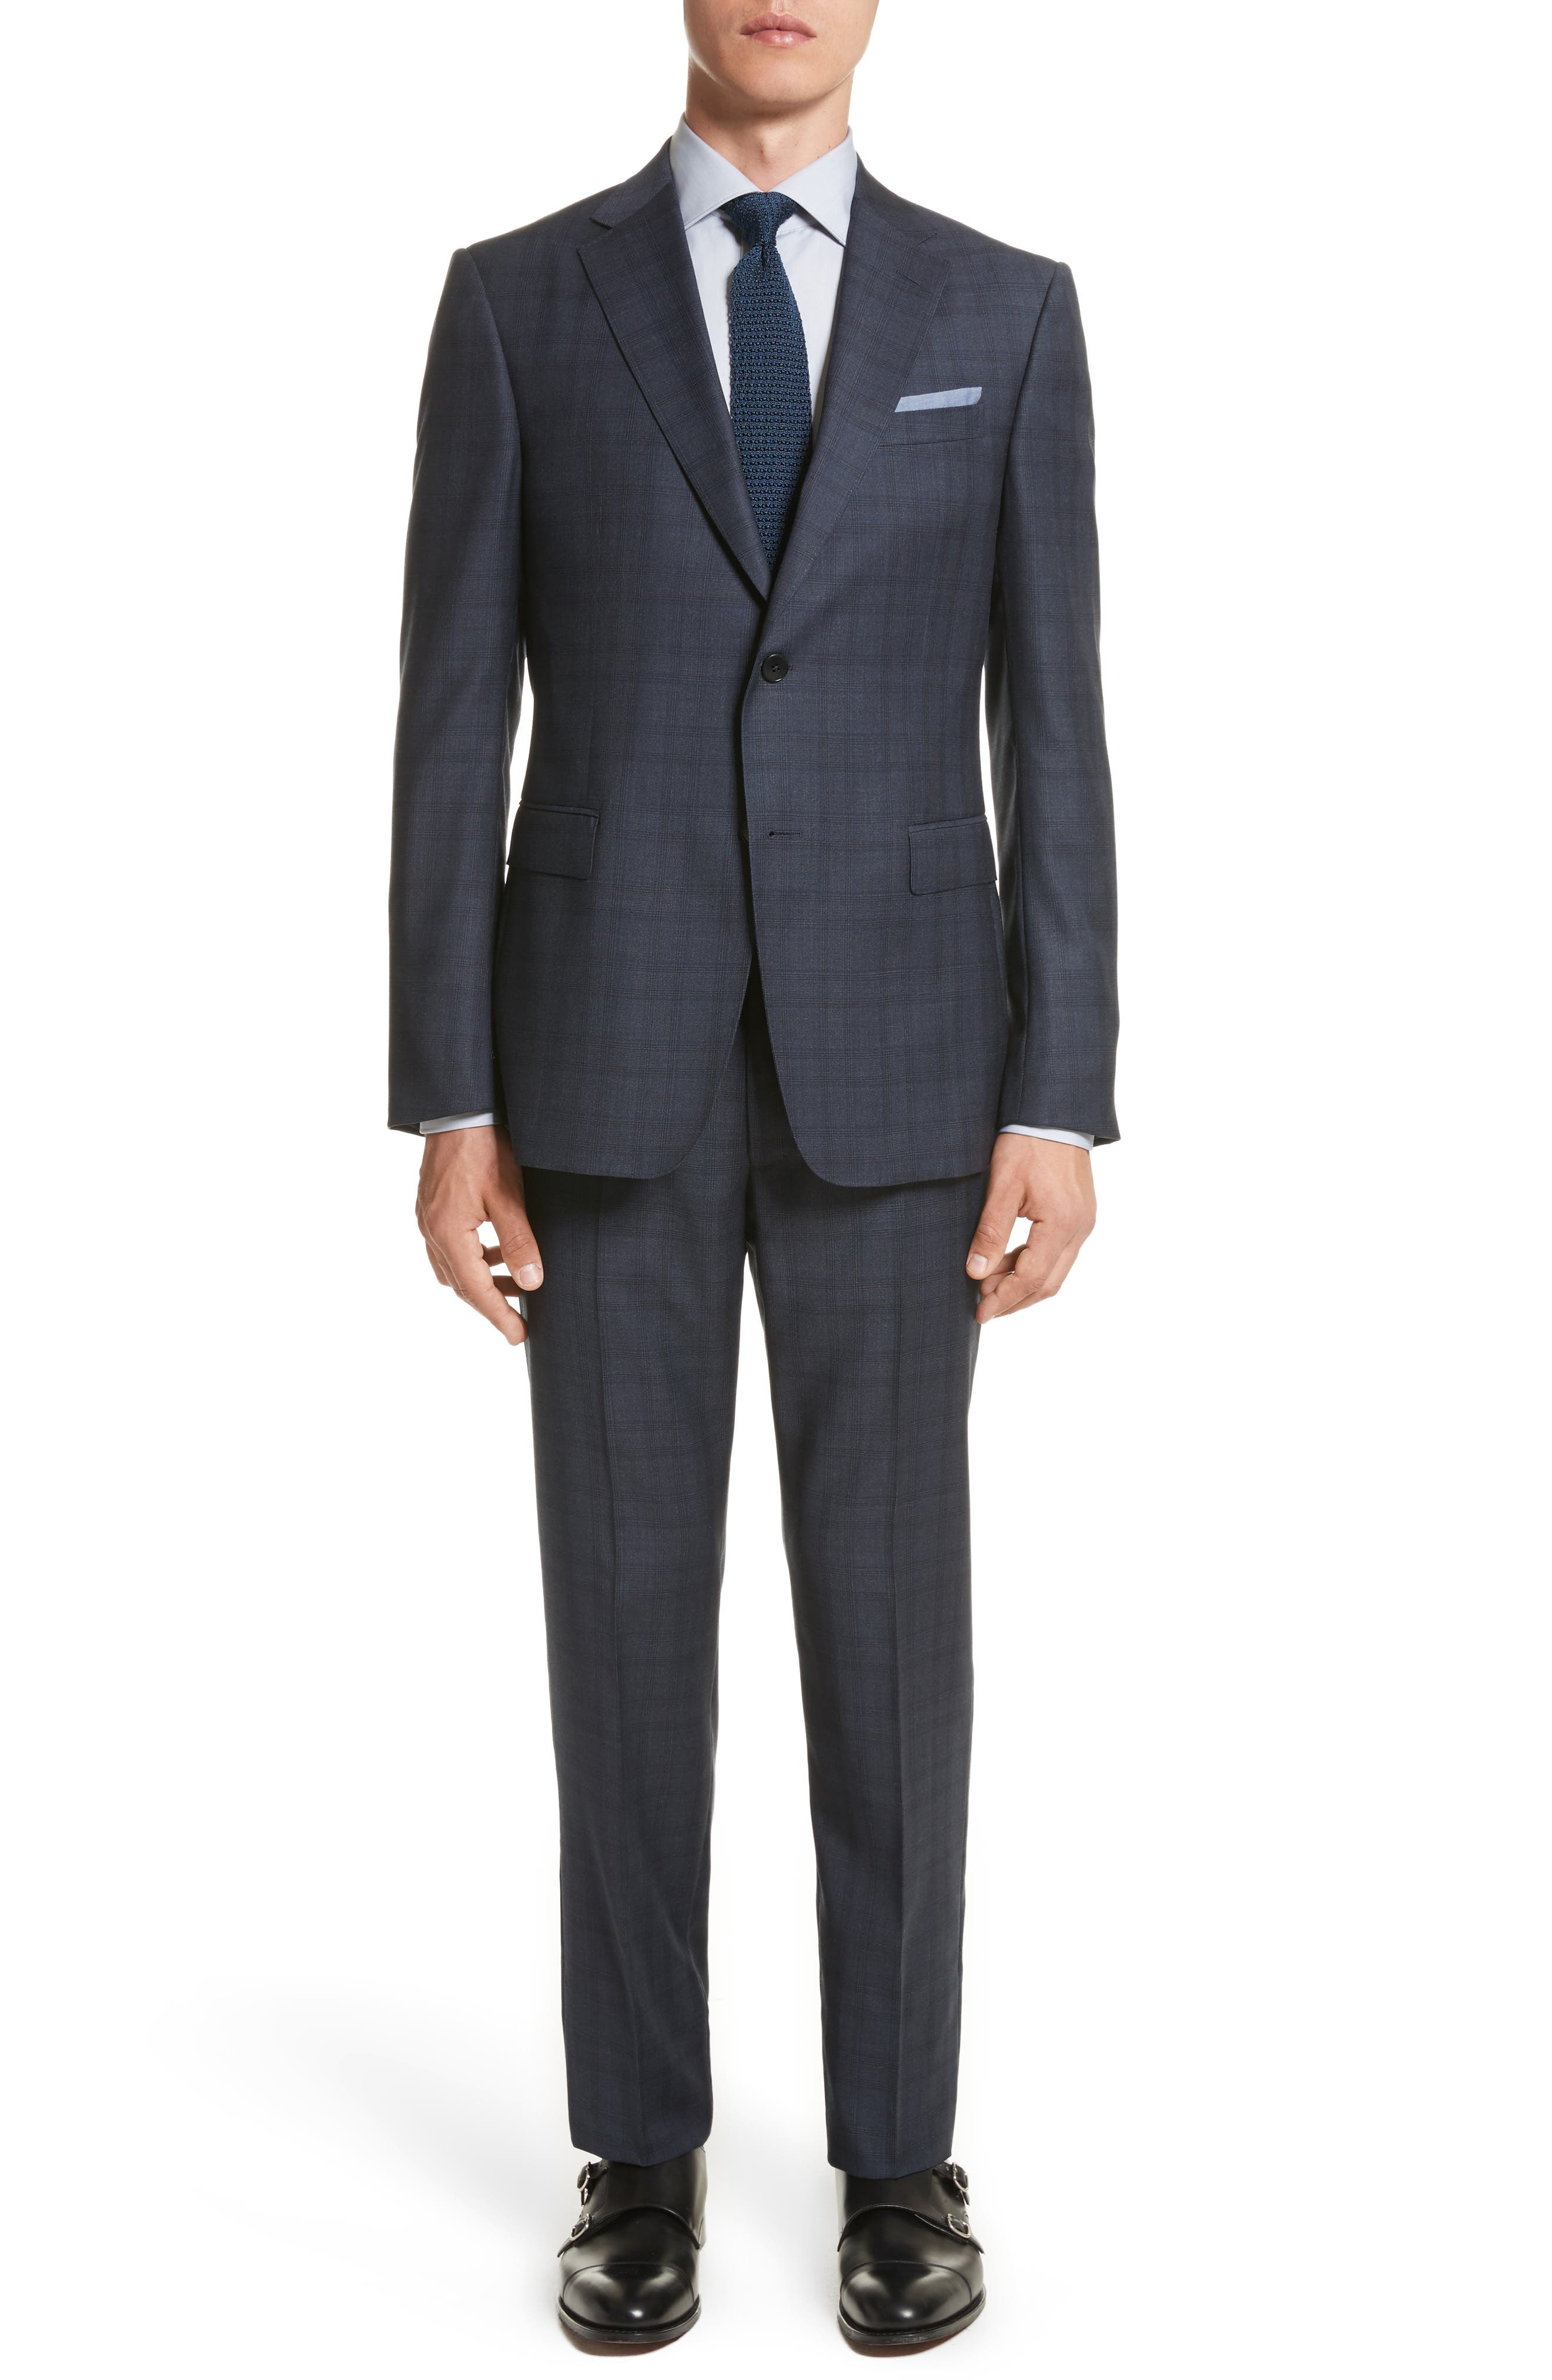 Alternate Image 1 Selected - Z Zegna Classic Fit Check Wool Suit